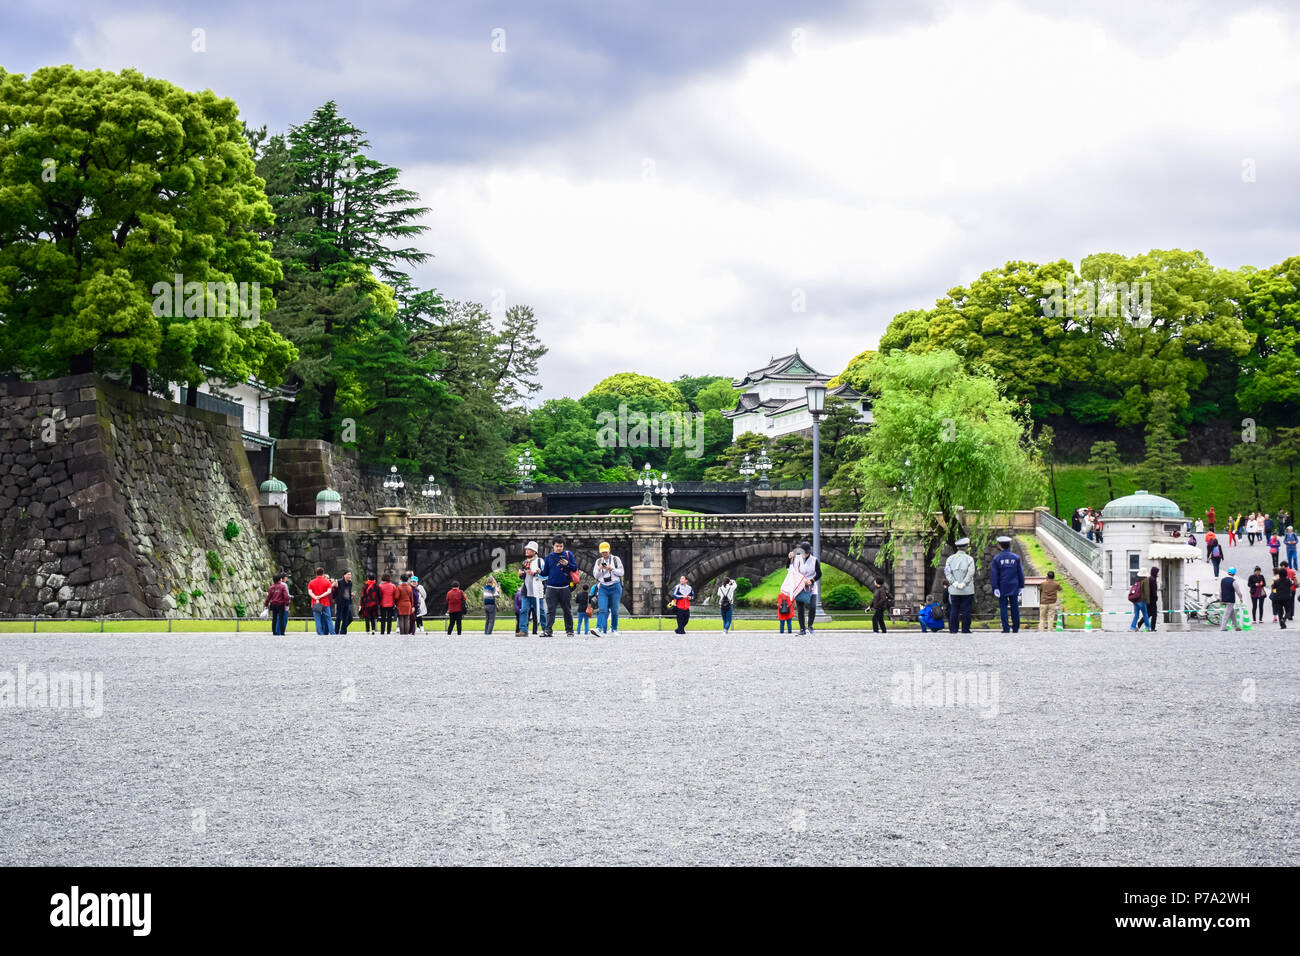 Tourists visiting Seimon Ishibashi Nijubashi Bridge, the Tokyo's most famous bridge at the Imperial Palace in Tokyo, Japan - Stock Image